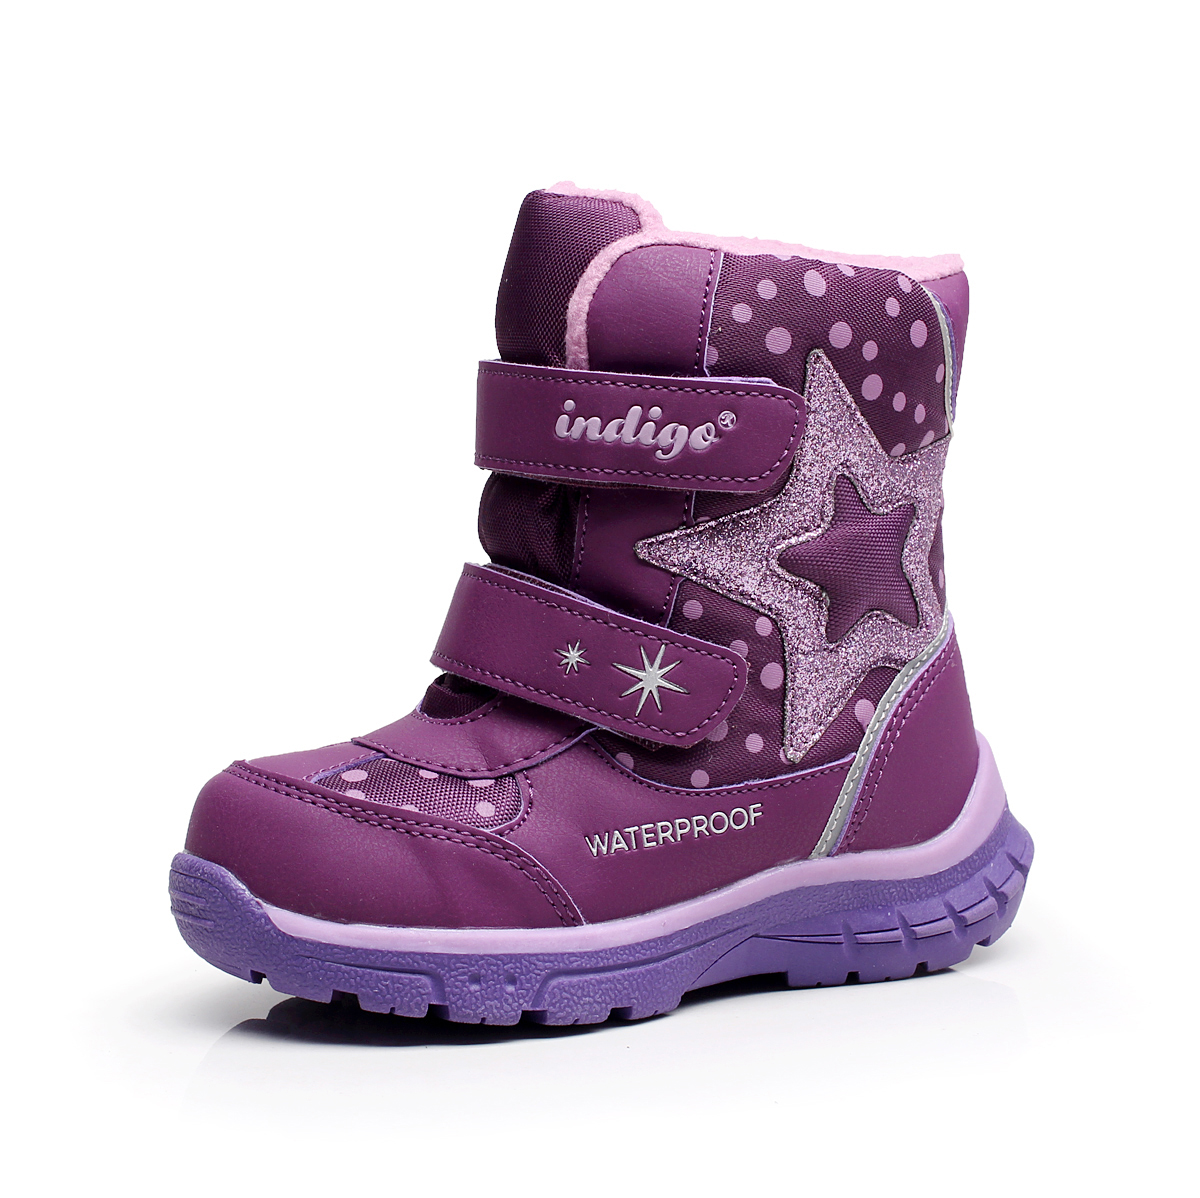 2017 New Children snow boots winter non-slip warm purple ankles Russian girl boots for girls size24-29<br>